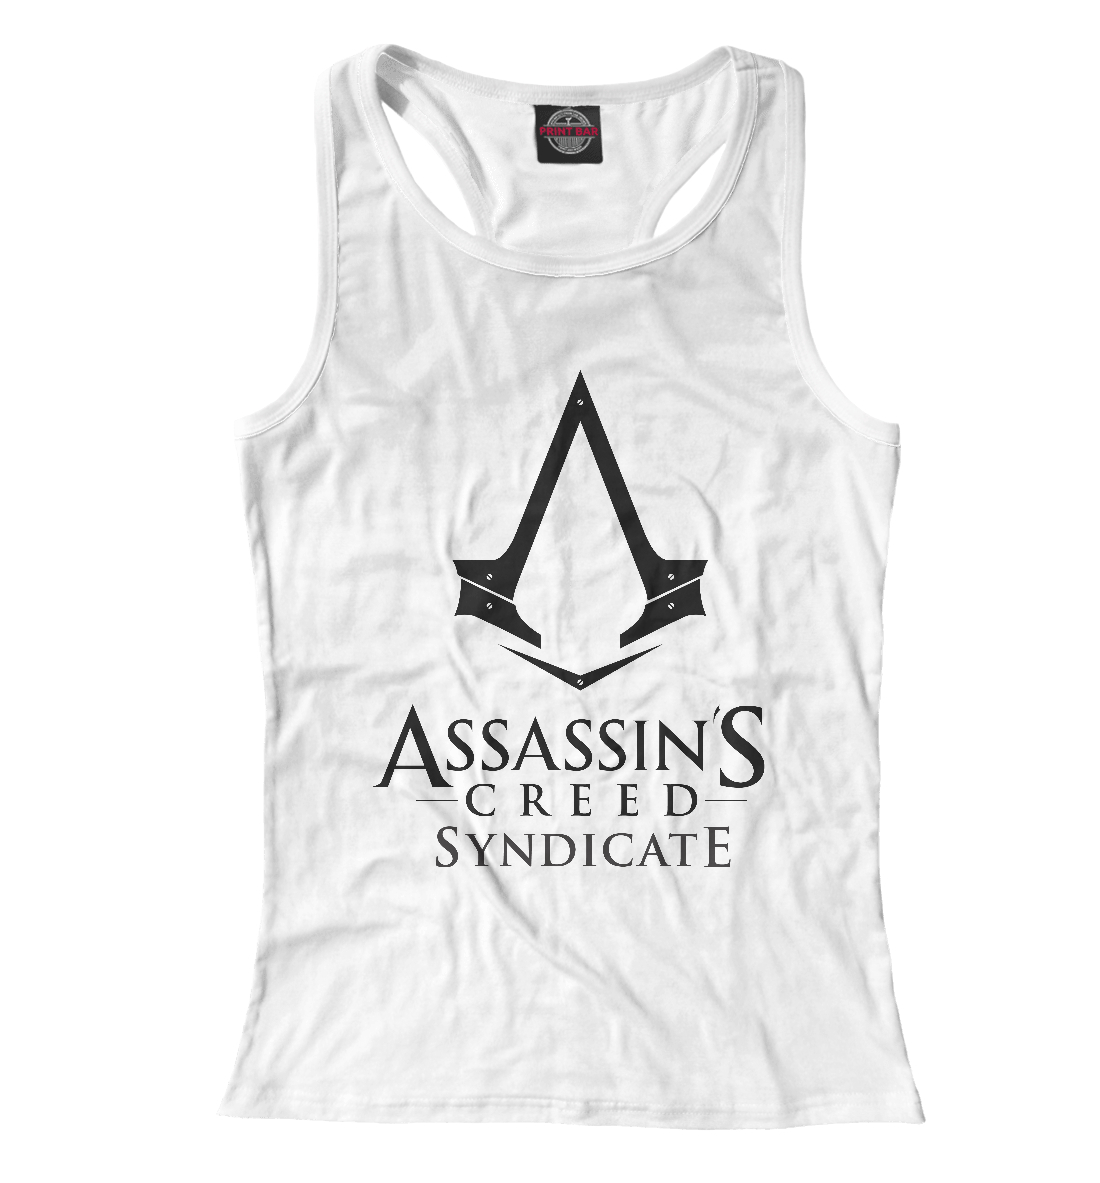 assassins creed wallet dft 3026 Assassins Creed: Syndicate